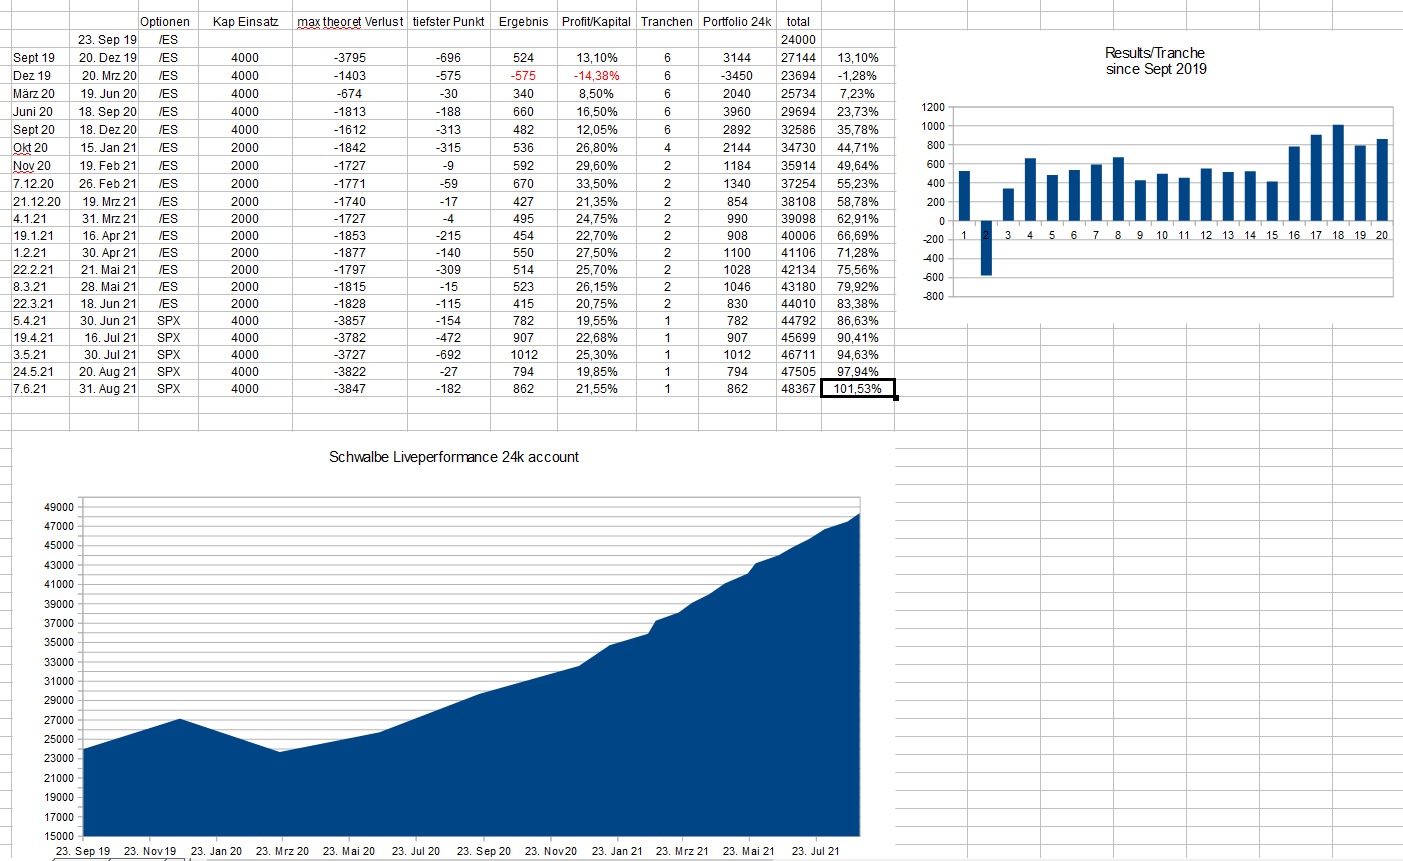 Live Trade Performance in $24,000 Account Image